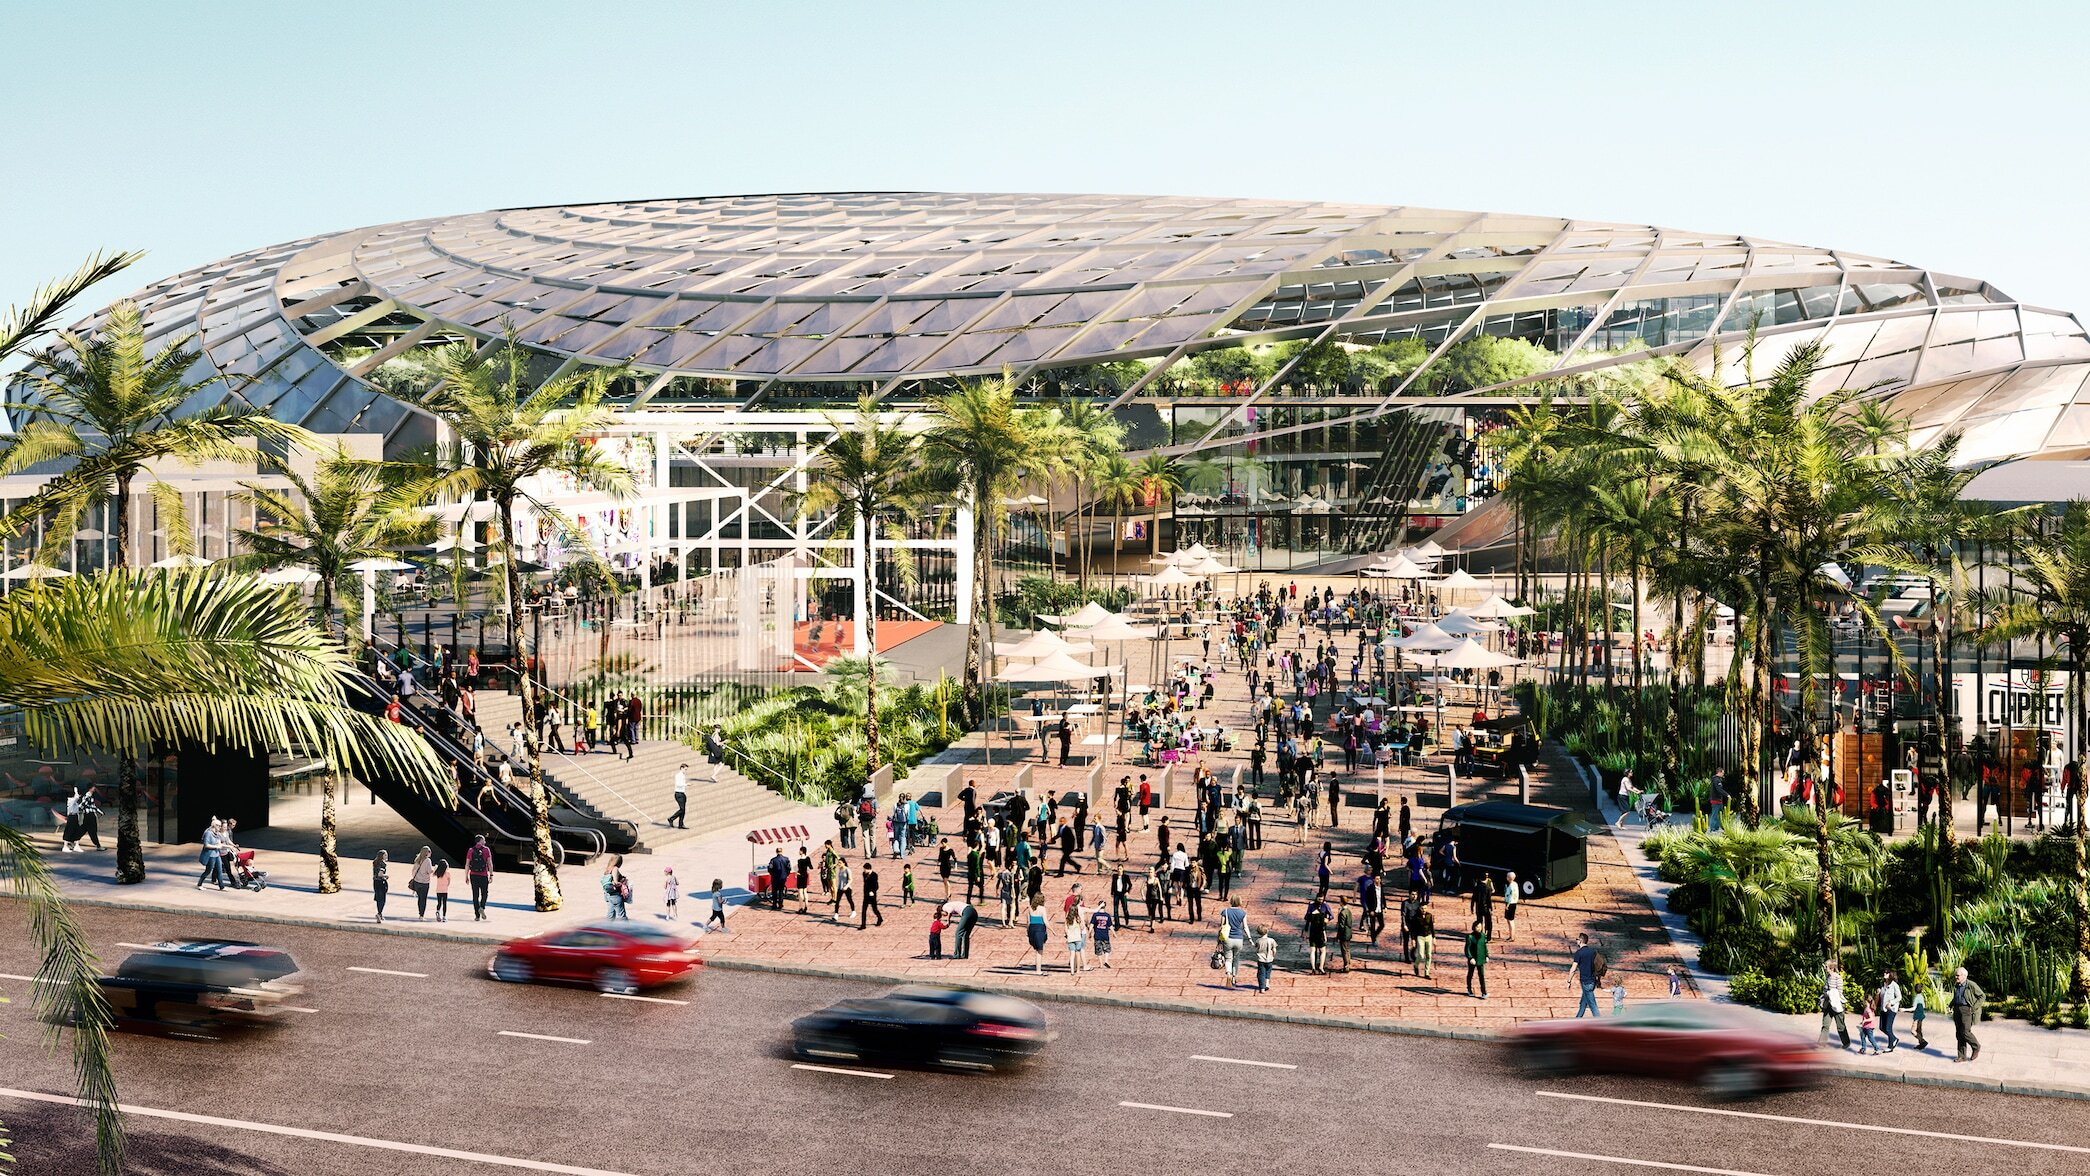 The 26-acre complex will house the Clippers' corporate headquarters and the team's training facility. (Photo Credit: NBA.com)